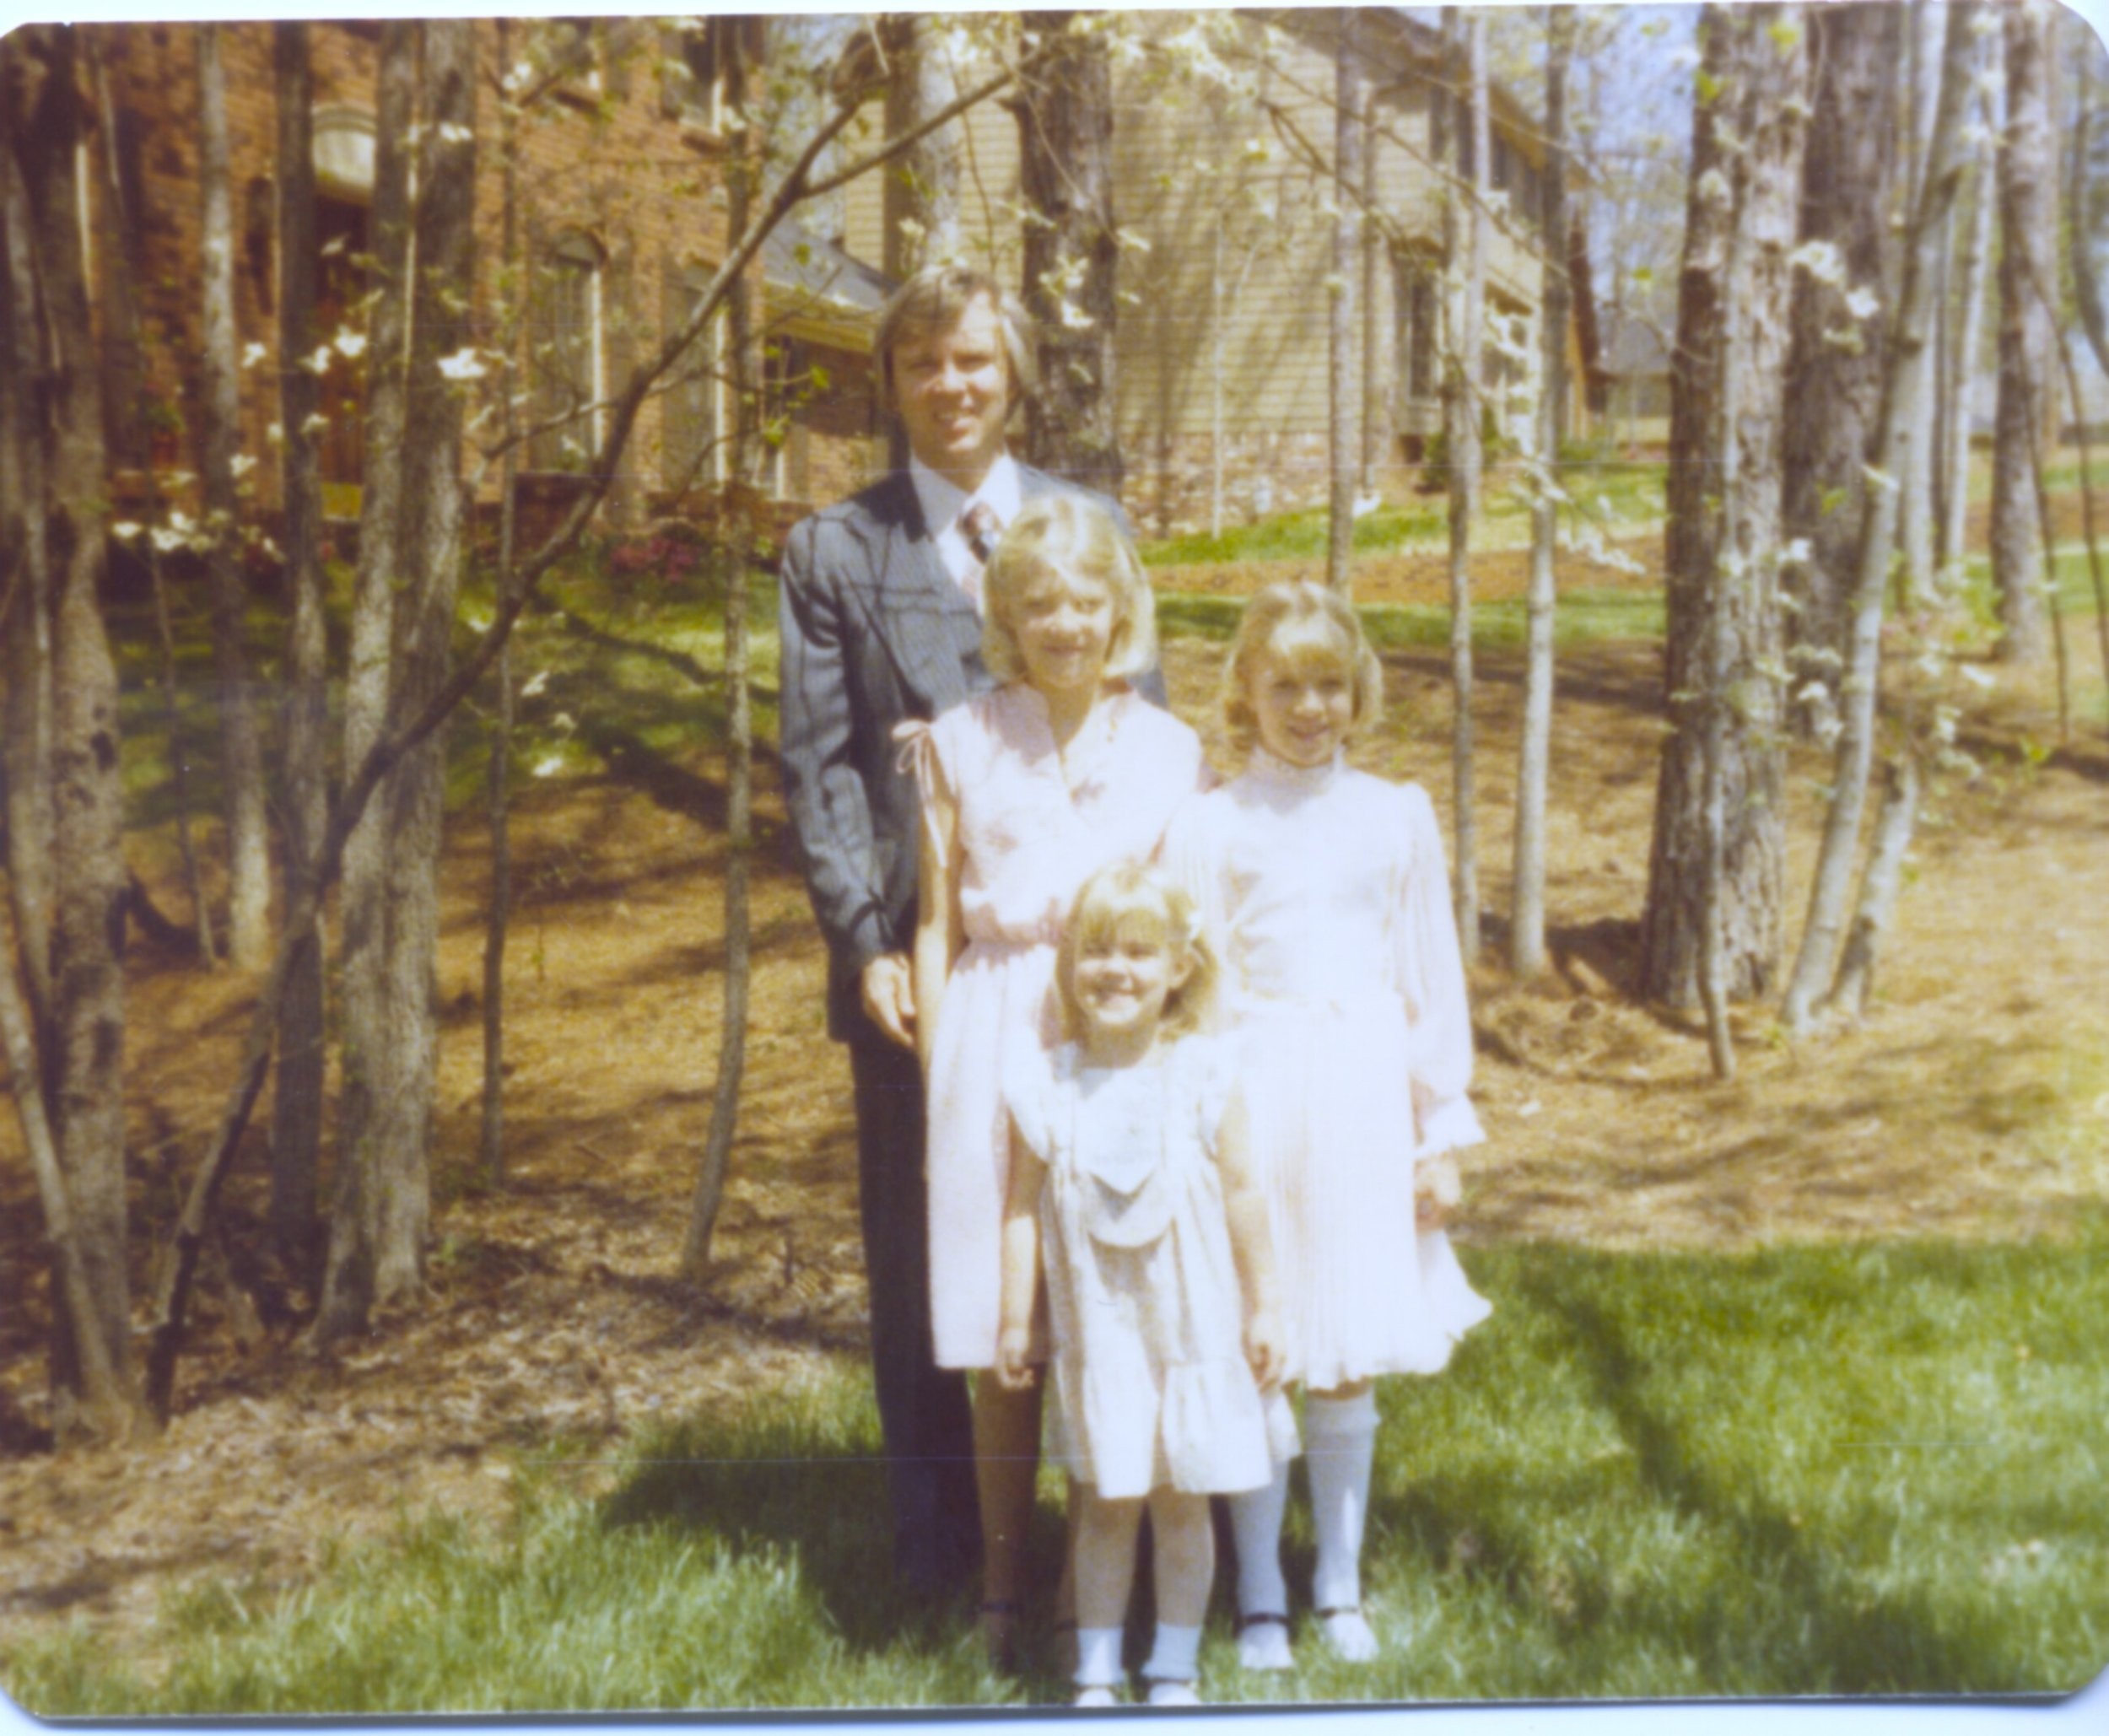 Our three daughters Lisa, Laurie, and Debra with their dad ... Hearthstone Circle, Easter 1979